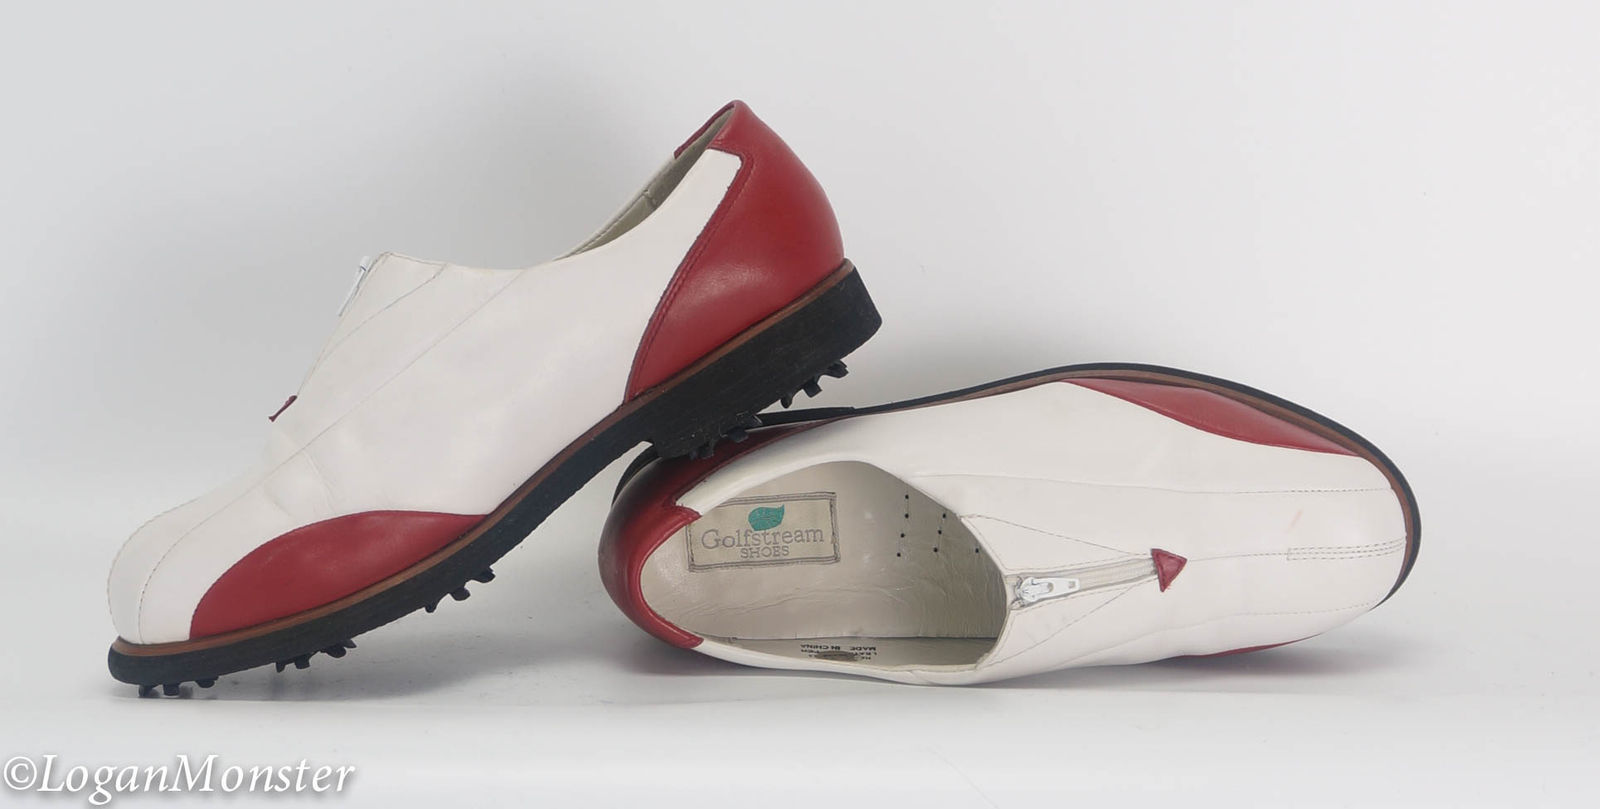 ec6fb30da0b Golfstream 8 1 2 Womens White Red Zipper Leather Golf Shoes -  30.00